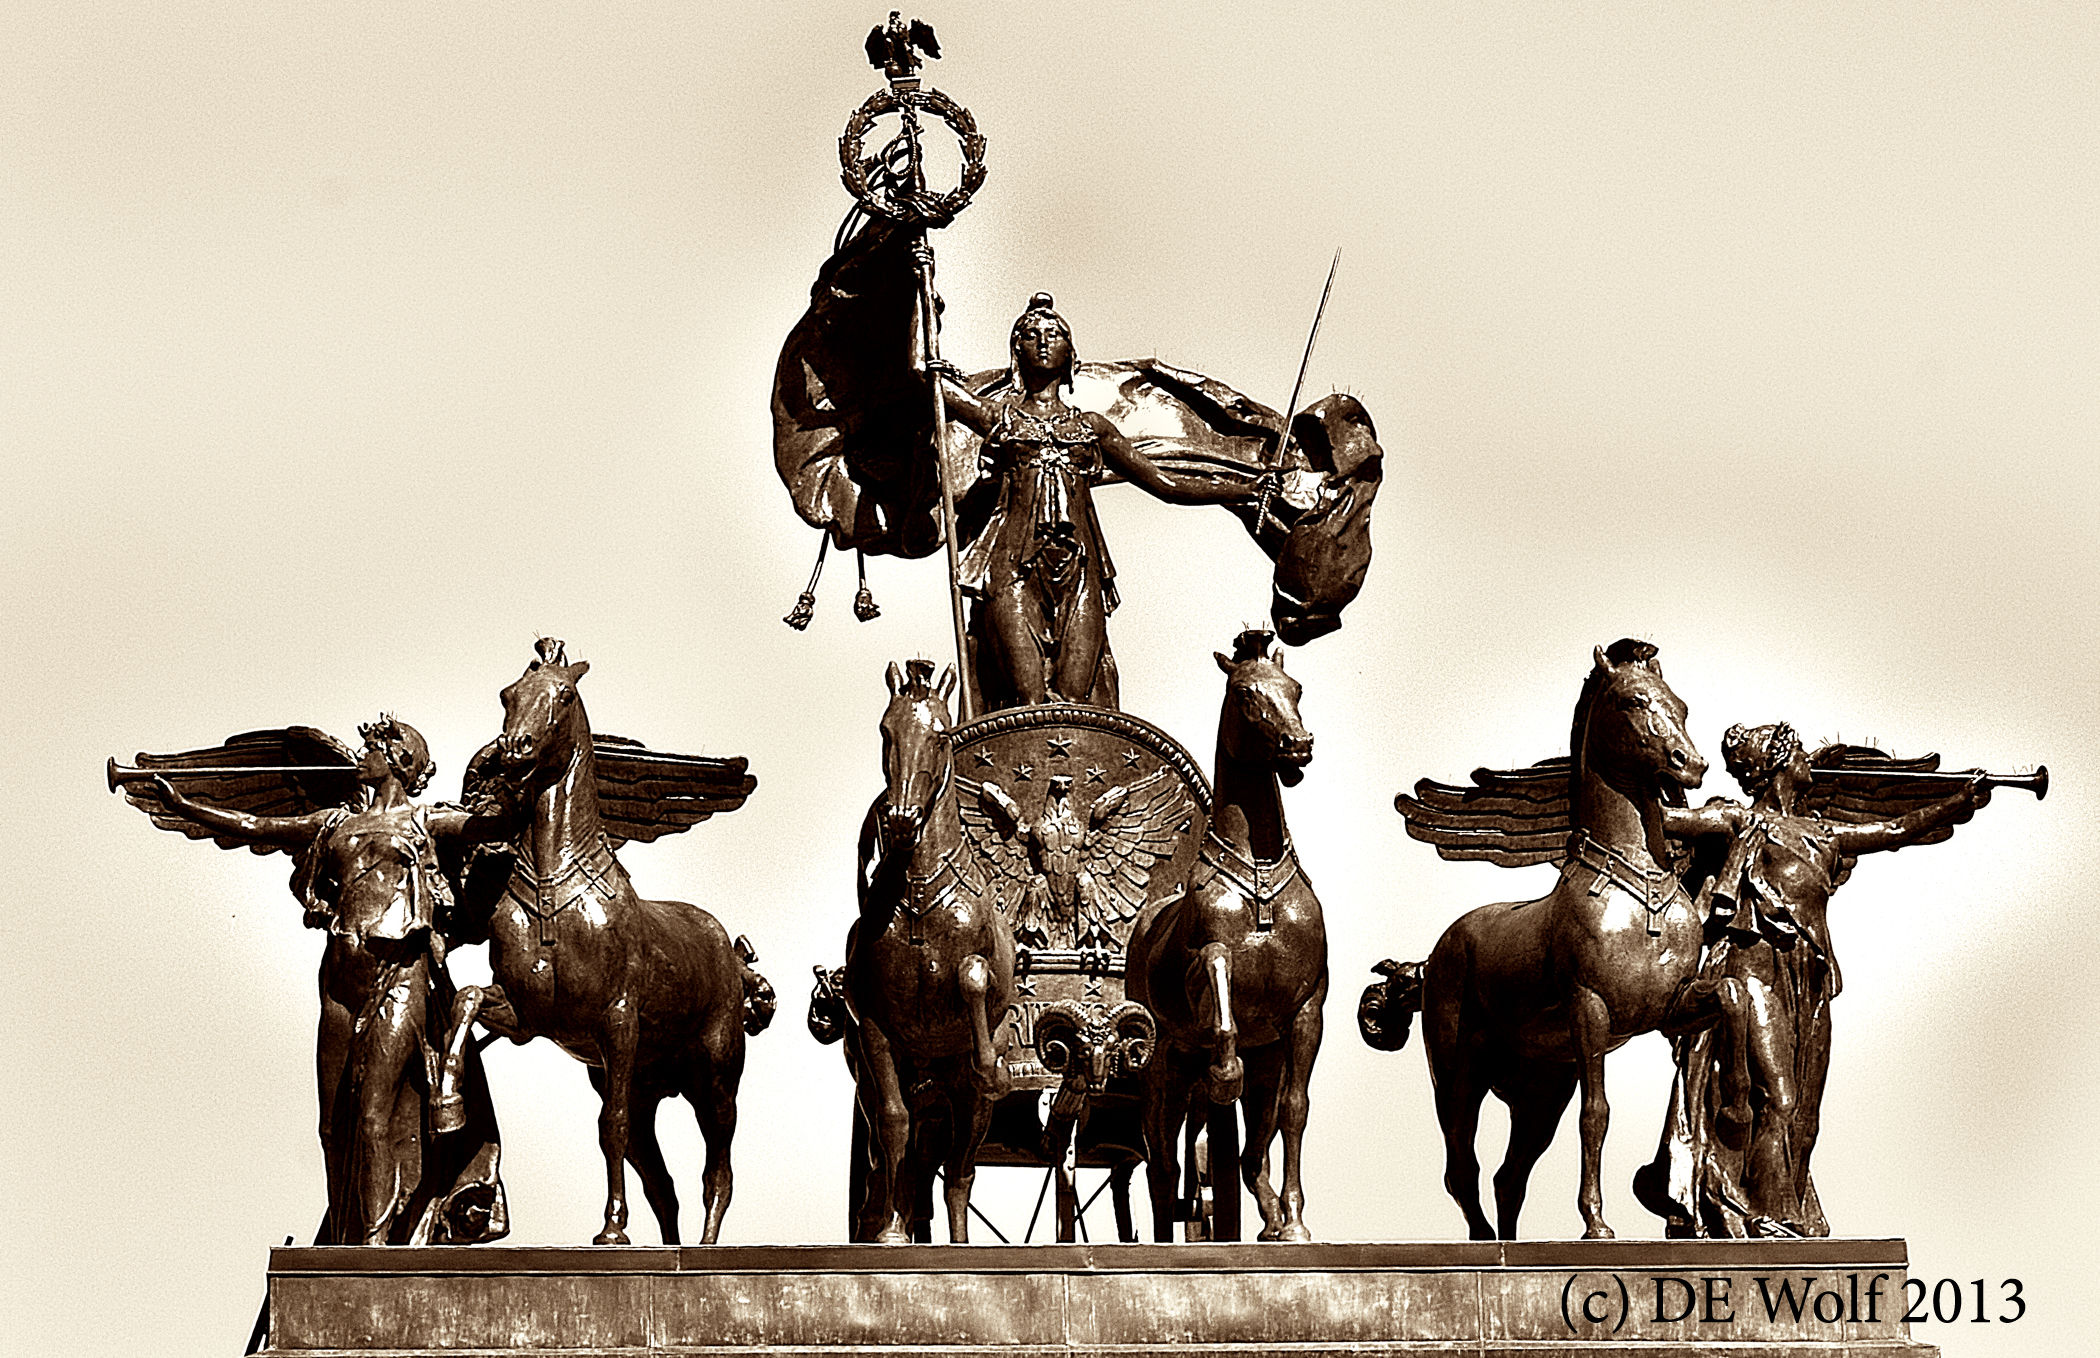 Figure 1 - Columbia and the victories atop the triumphal arch at Brooklyn's Grand Army Plaza, (c) DE Wolf 2013.